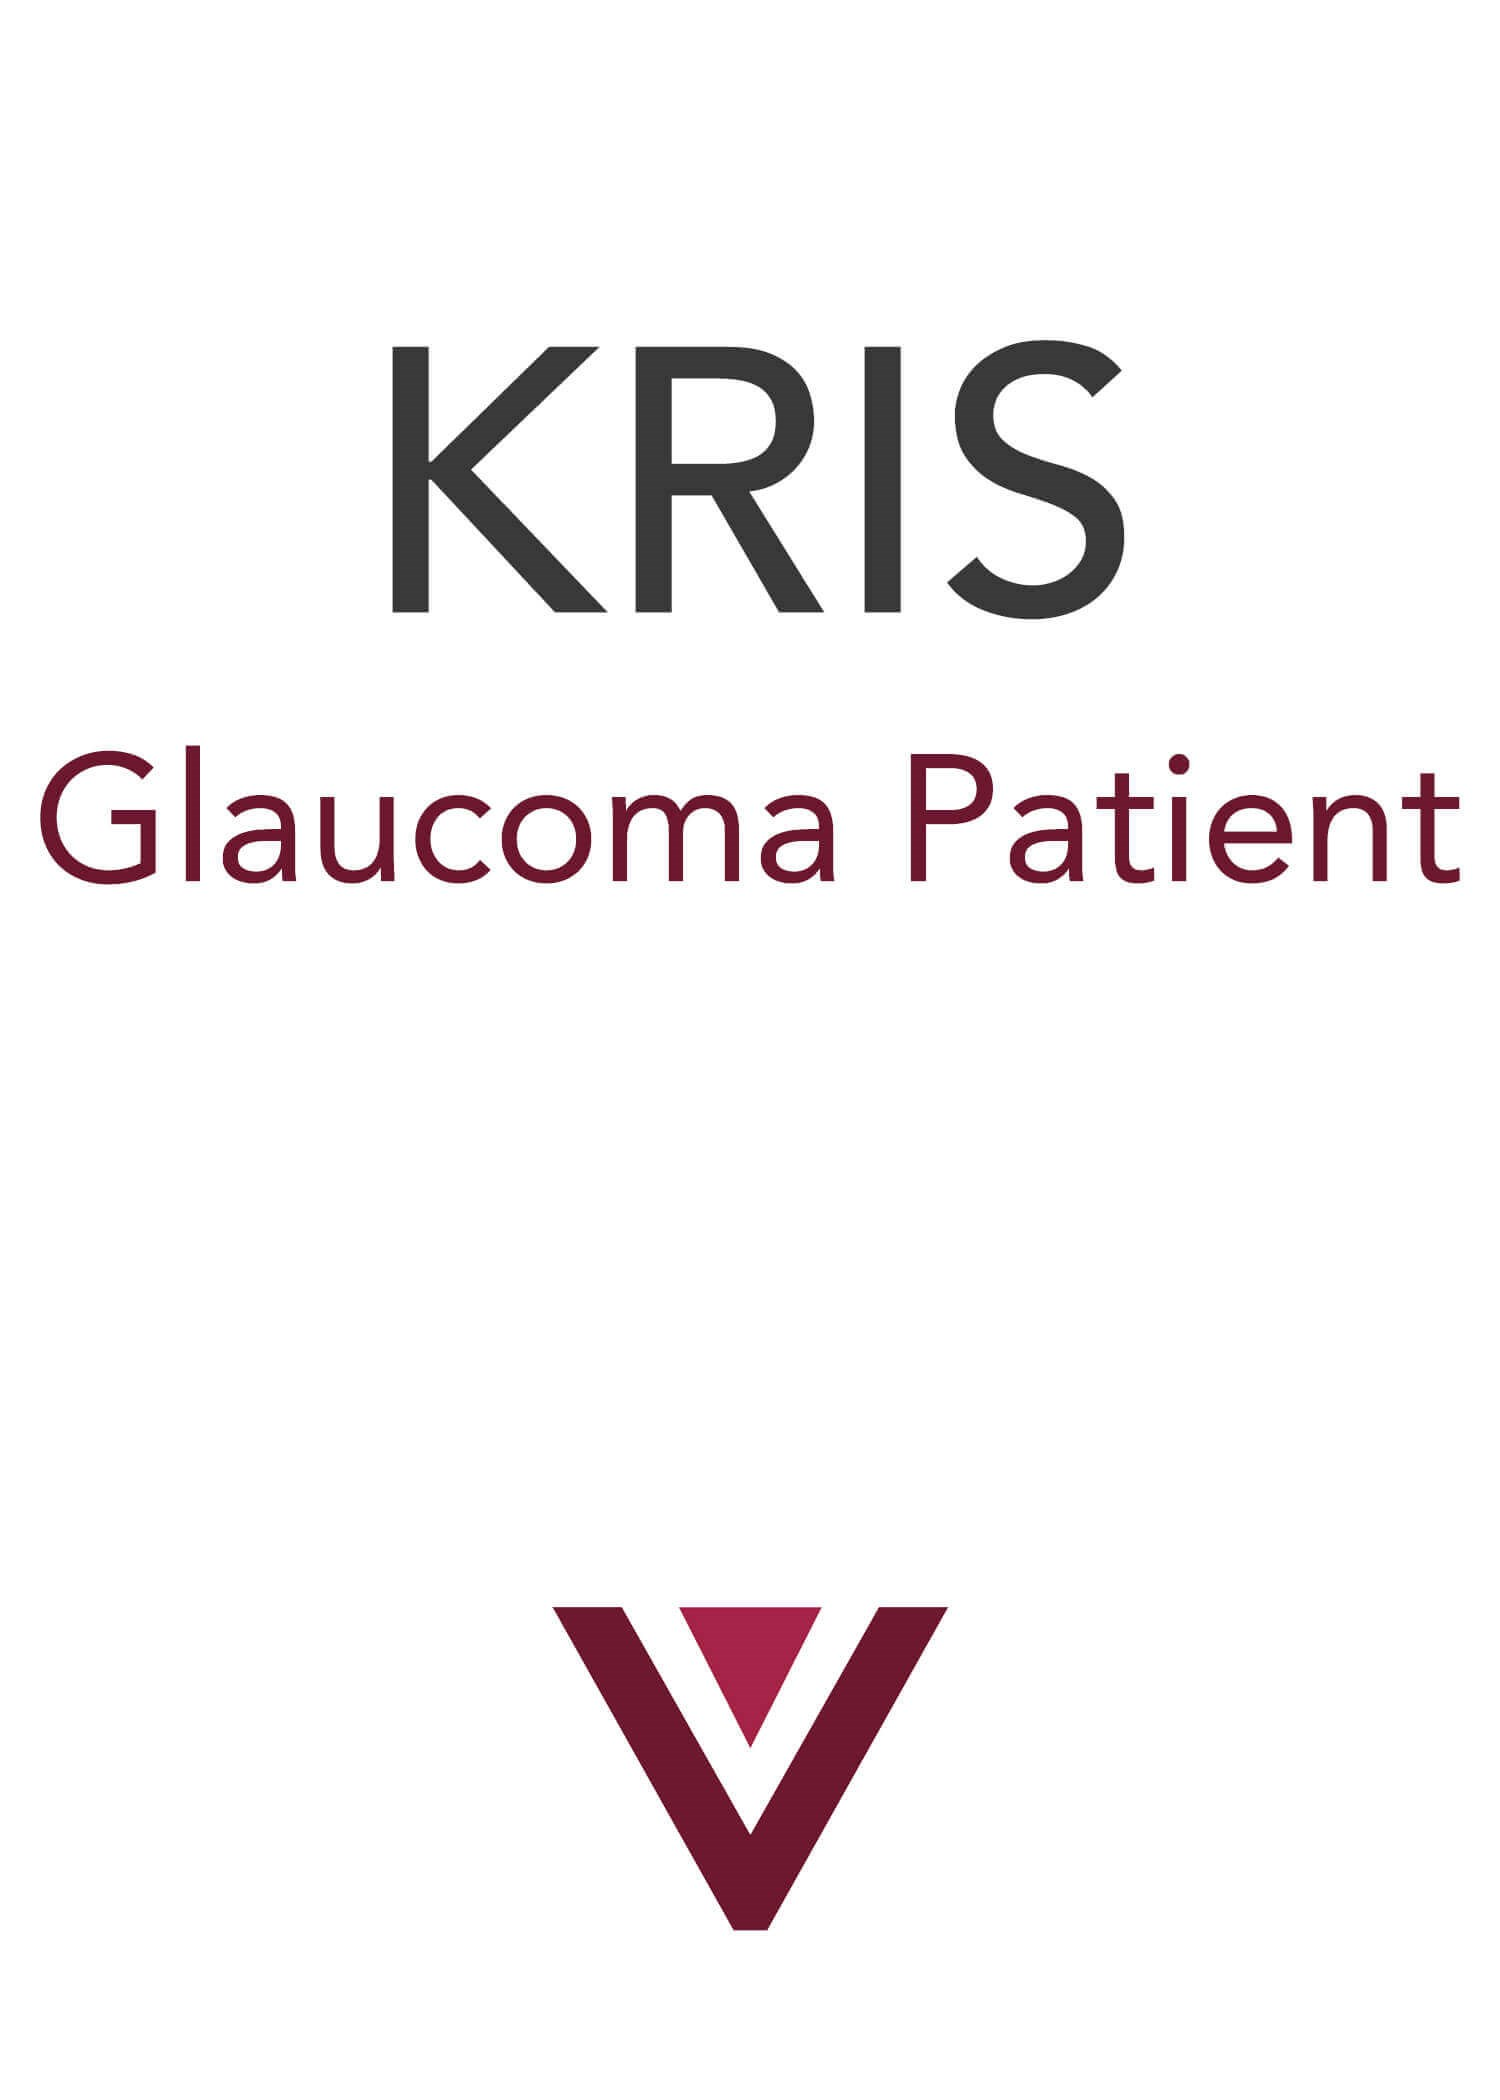 Kris is off of drops! Glaucoma Game Changer